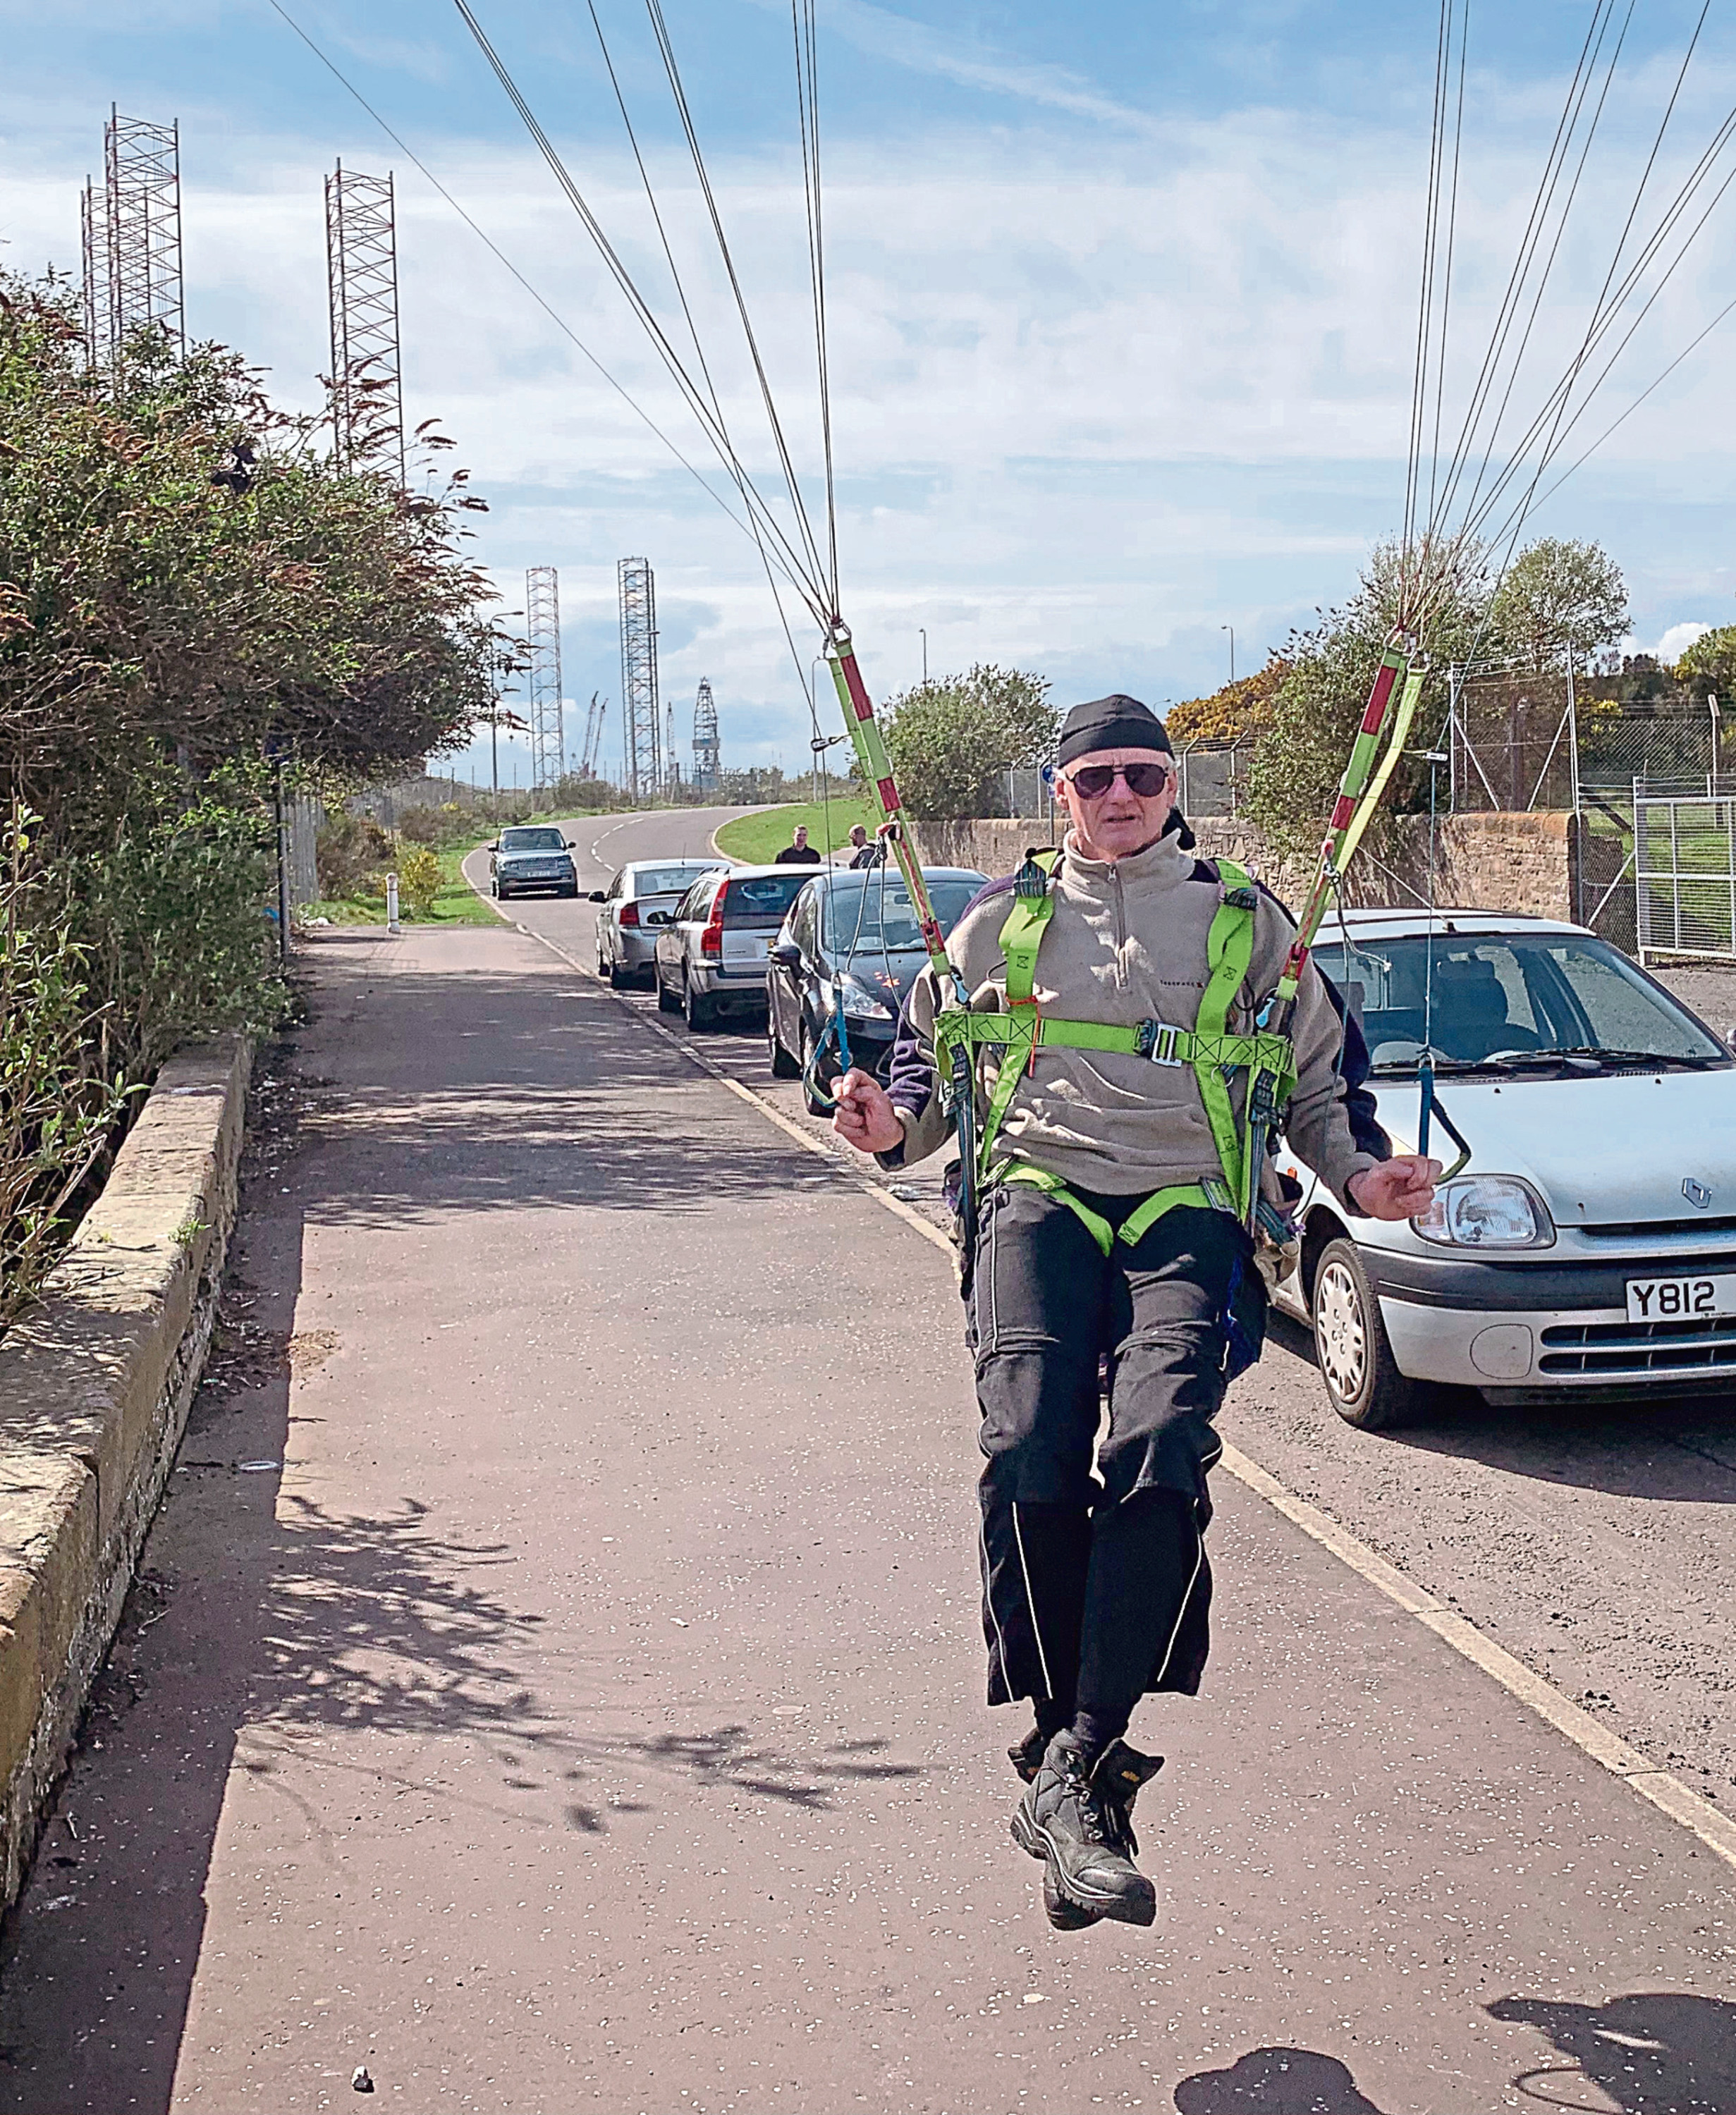 Veteran paraglider stuns onlookers by flying out over Tay